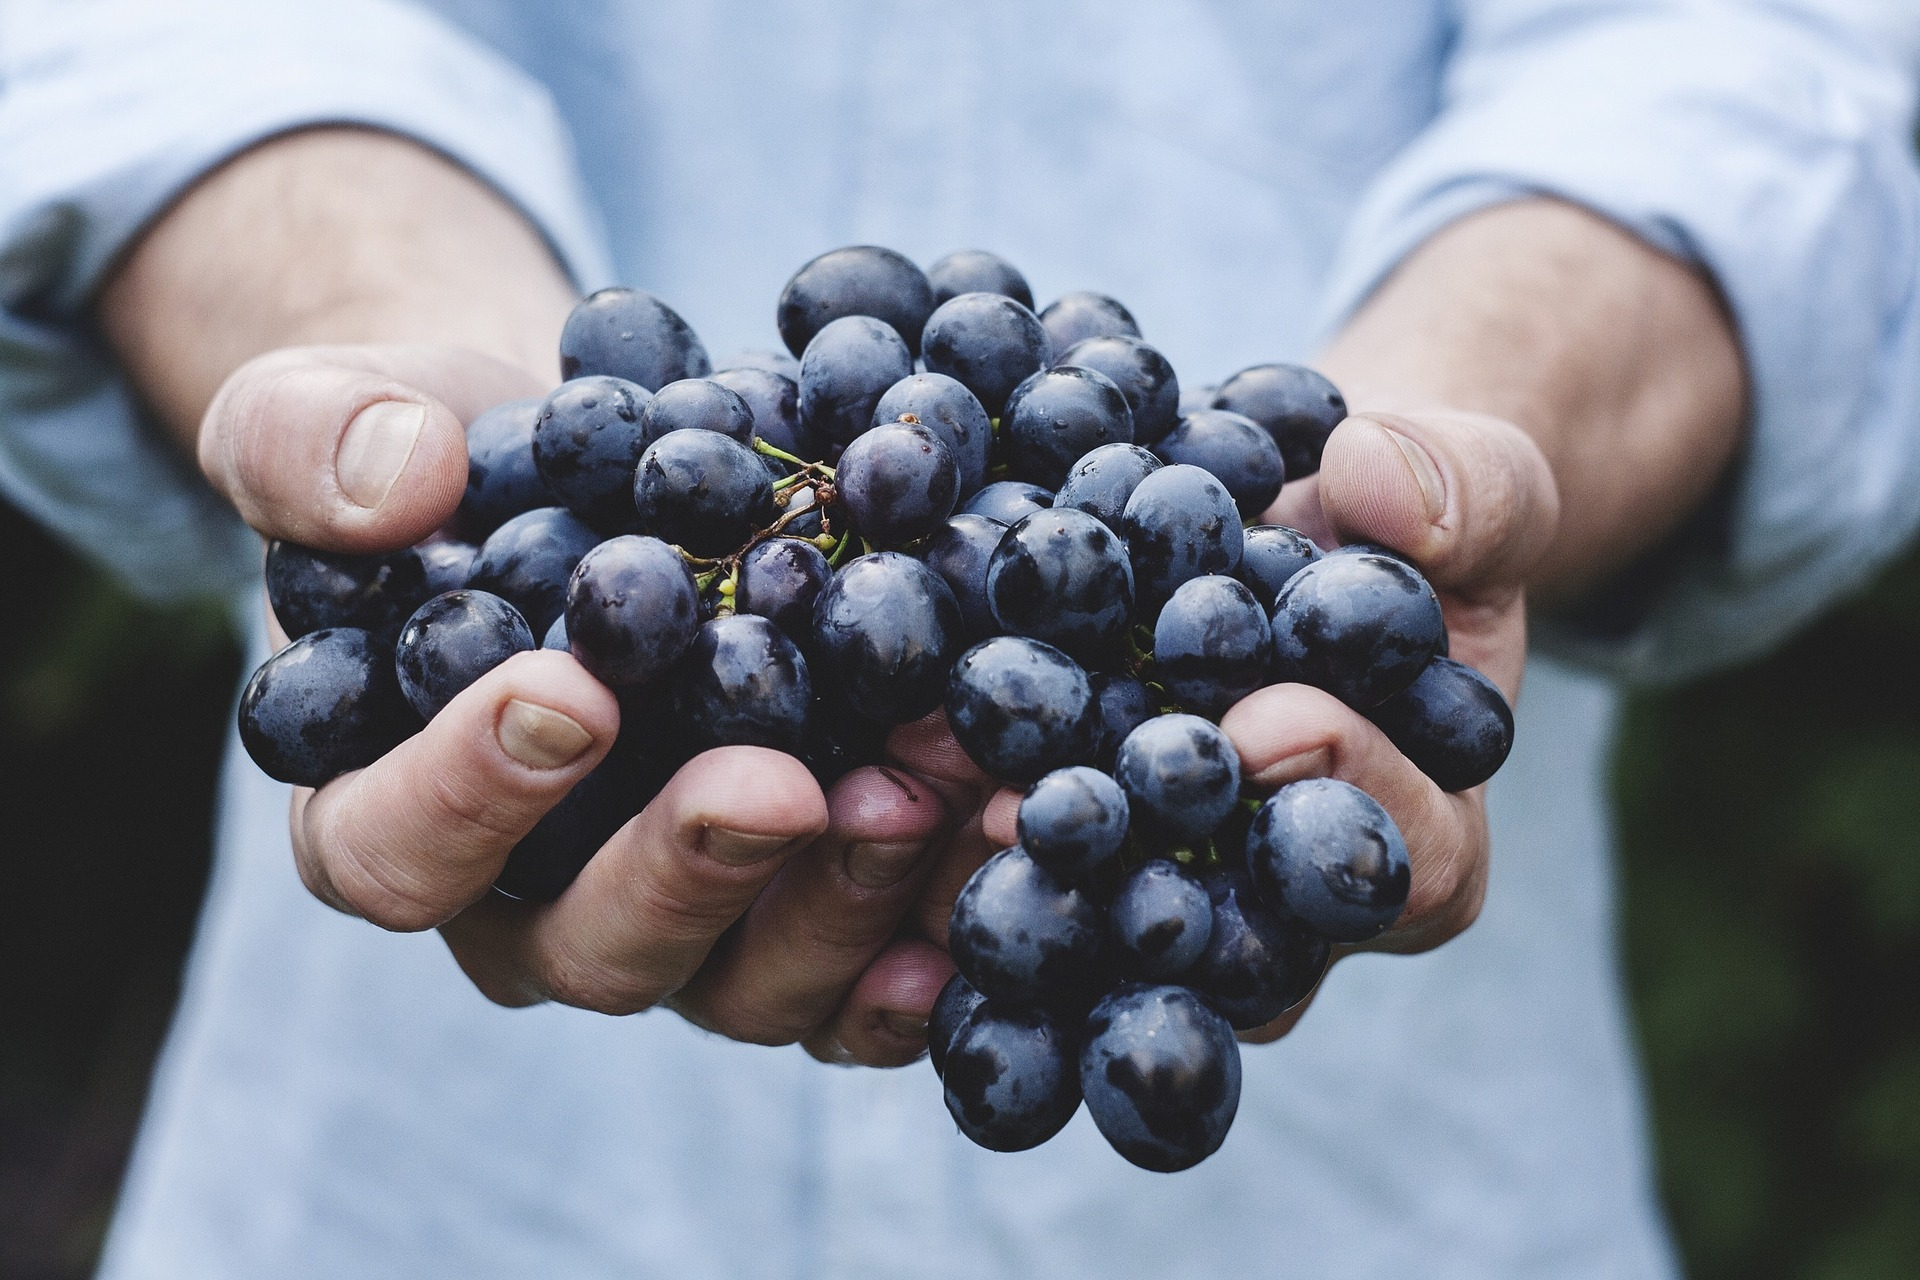 Grape ripening: when the best time to harvest?